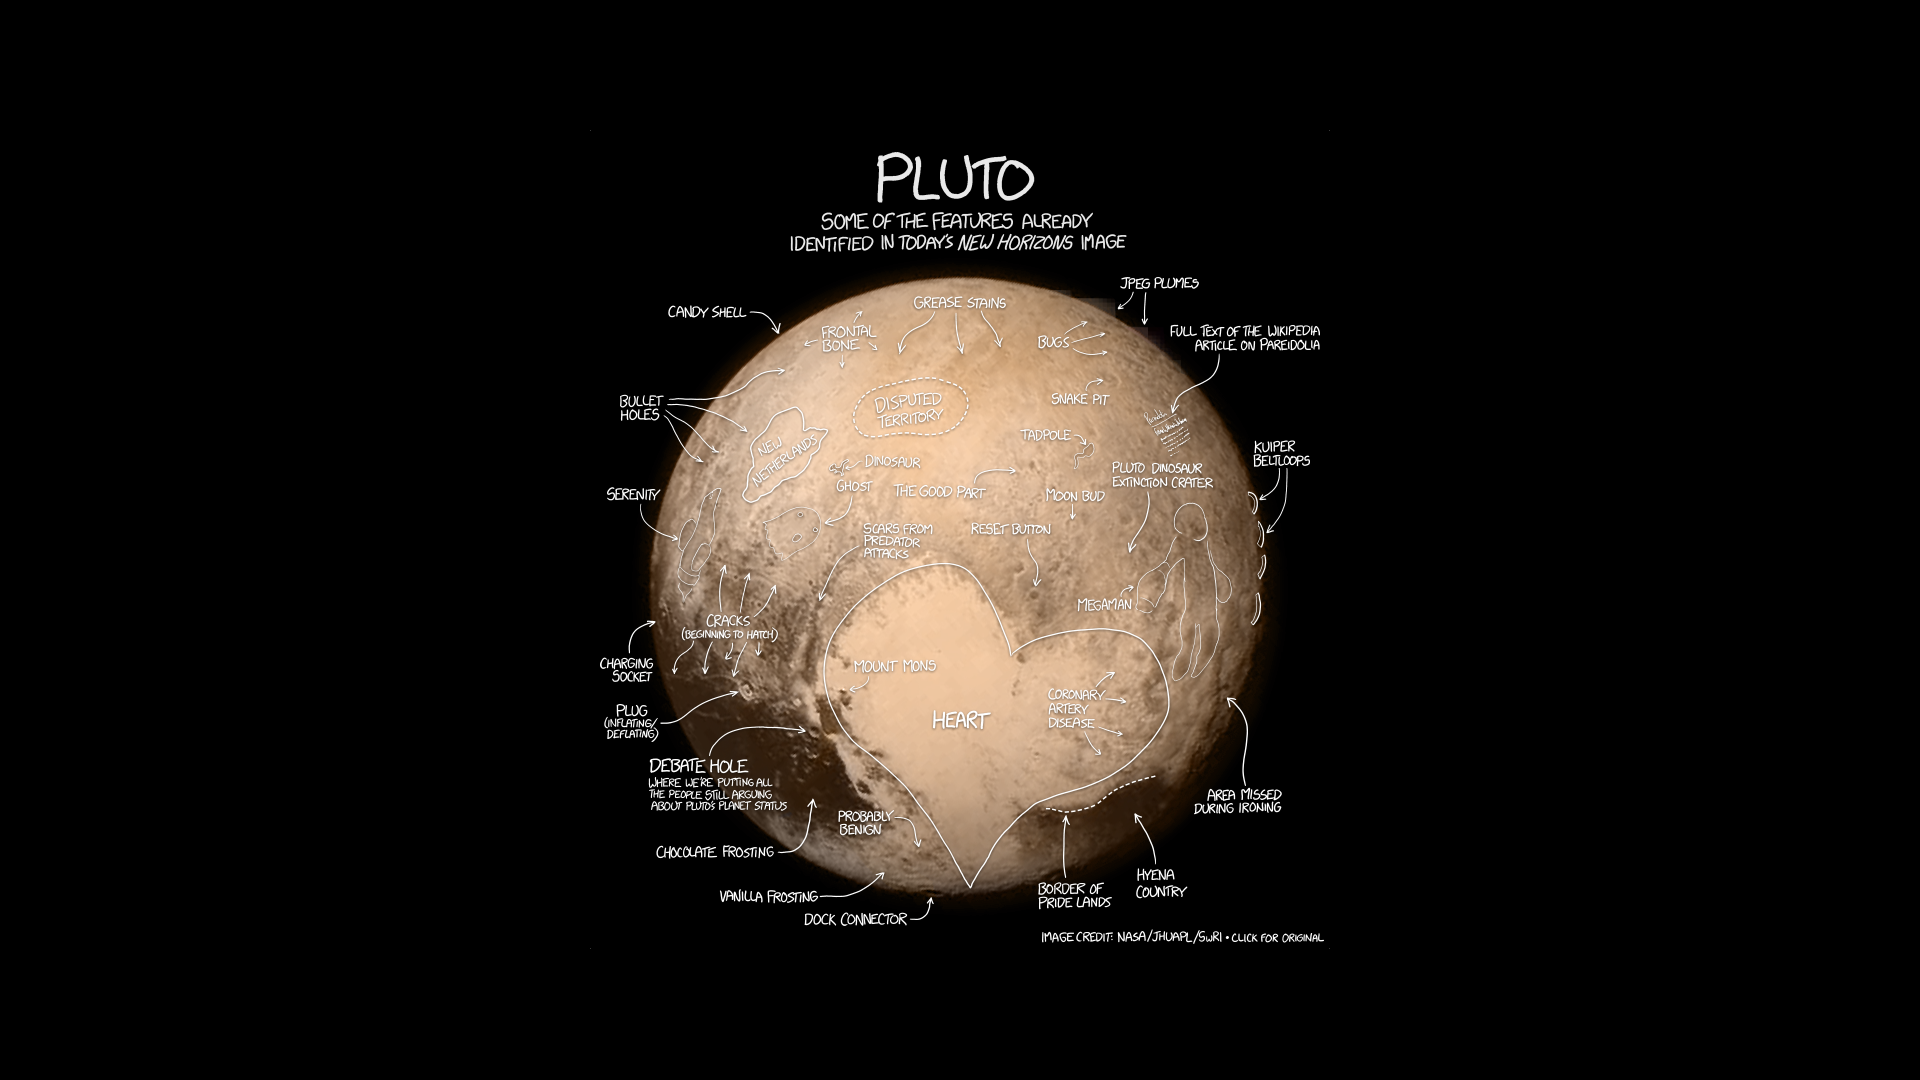 Hd Background Wallpaper 800x600: [44+] HD Pluto Wallpaper On WallpaperSafari